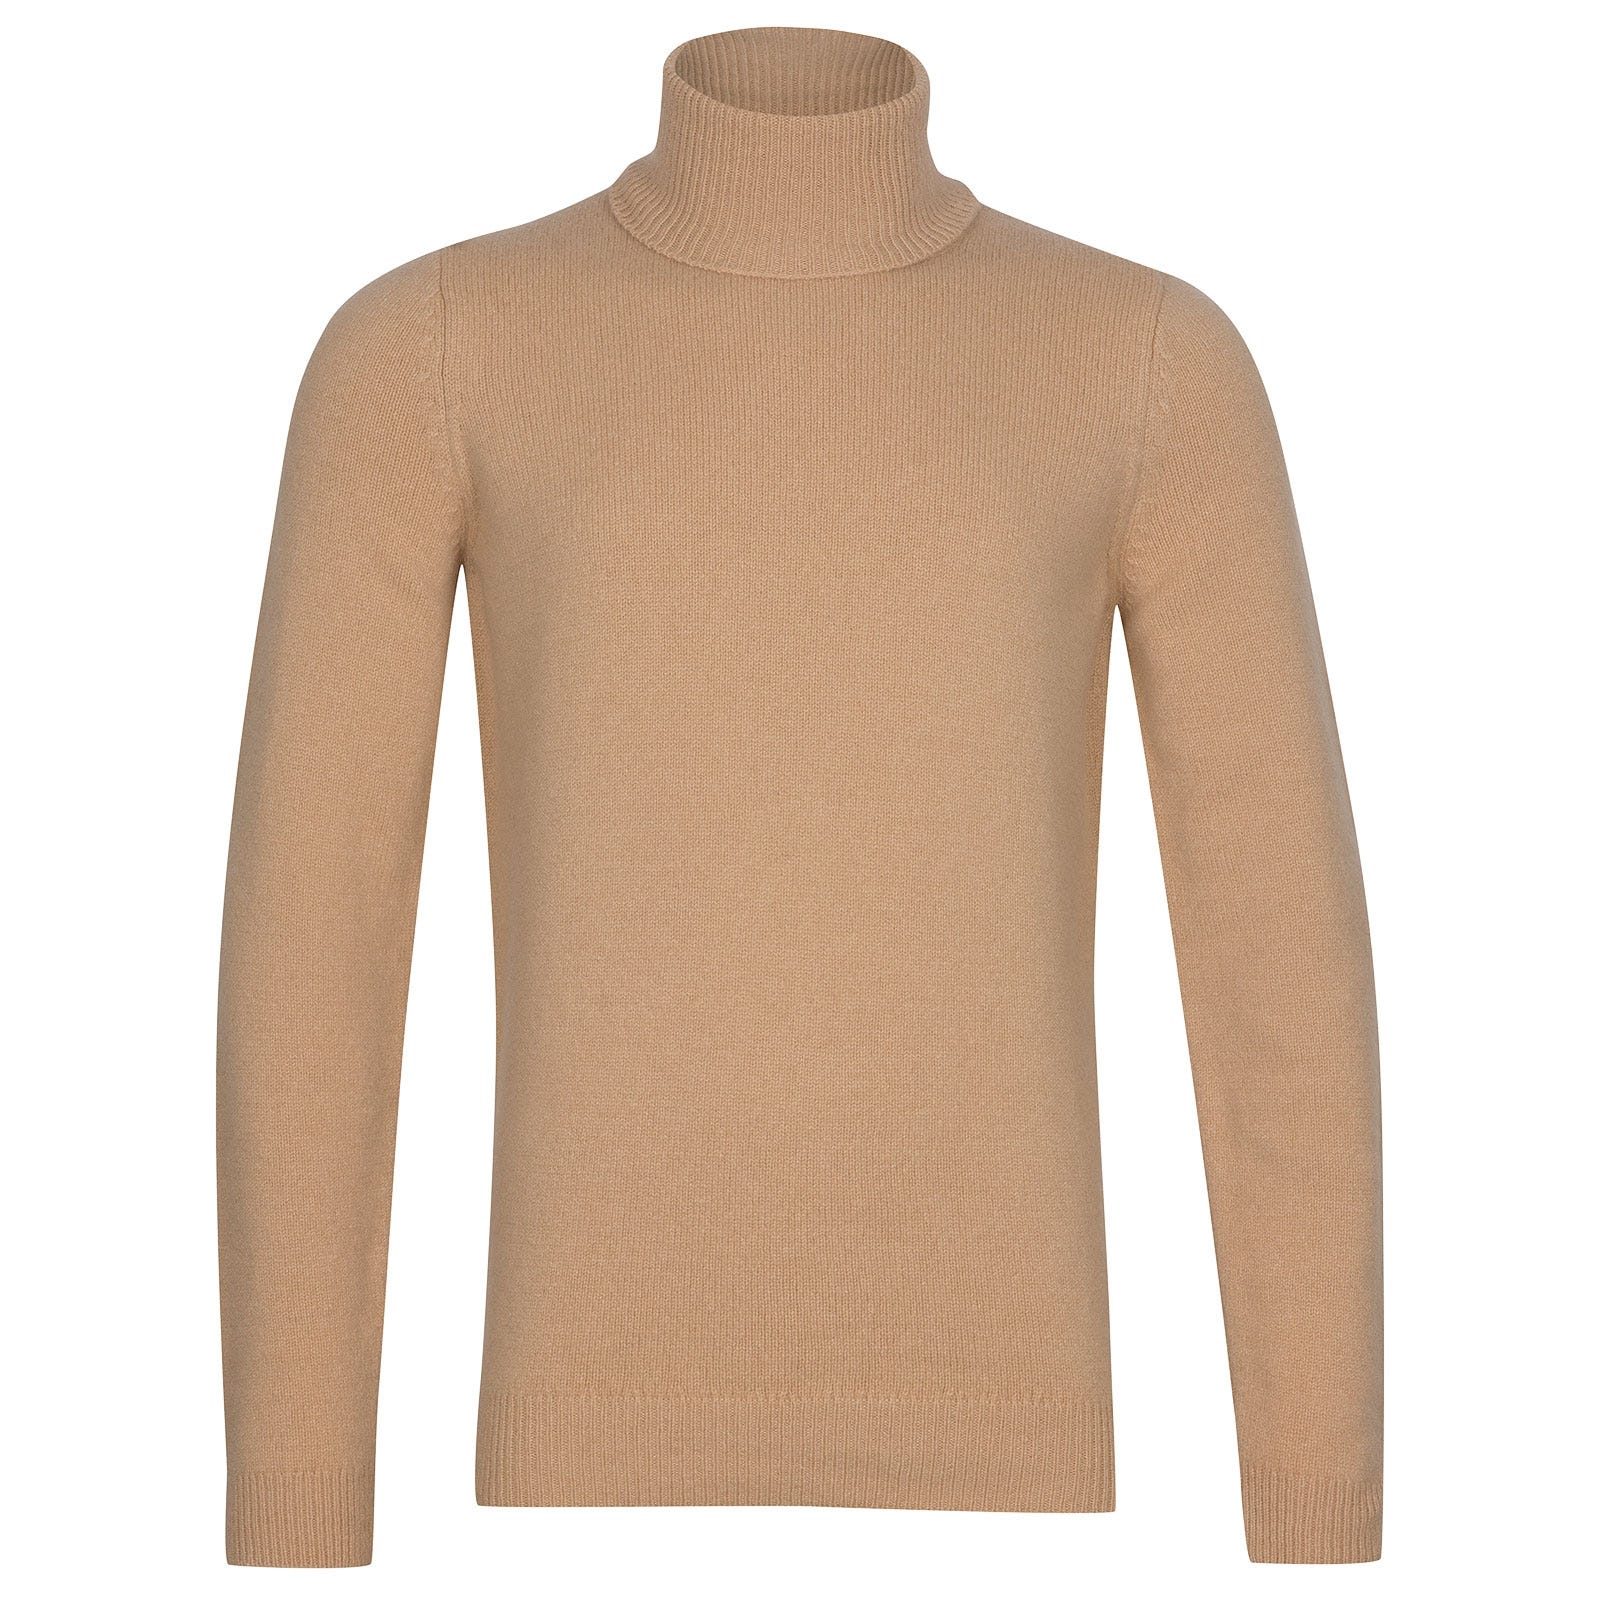 John Smedley Zachary Wool and Cashmere Pullover in Light Camel-XL